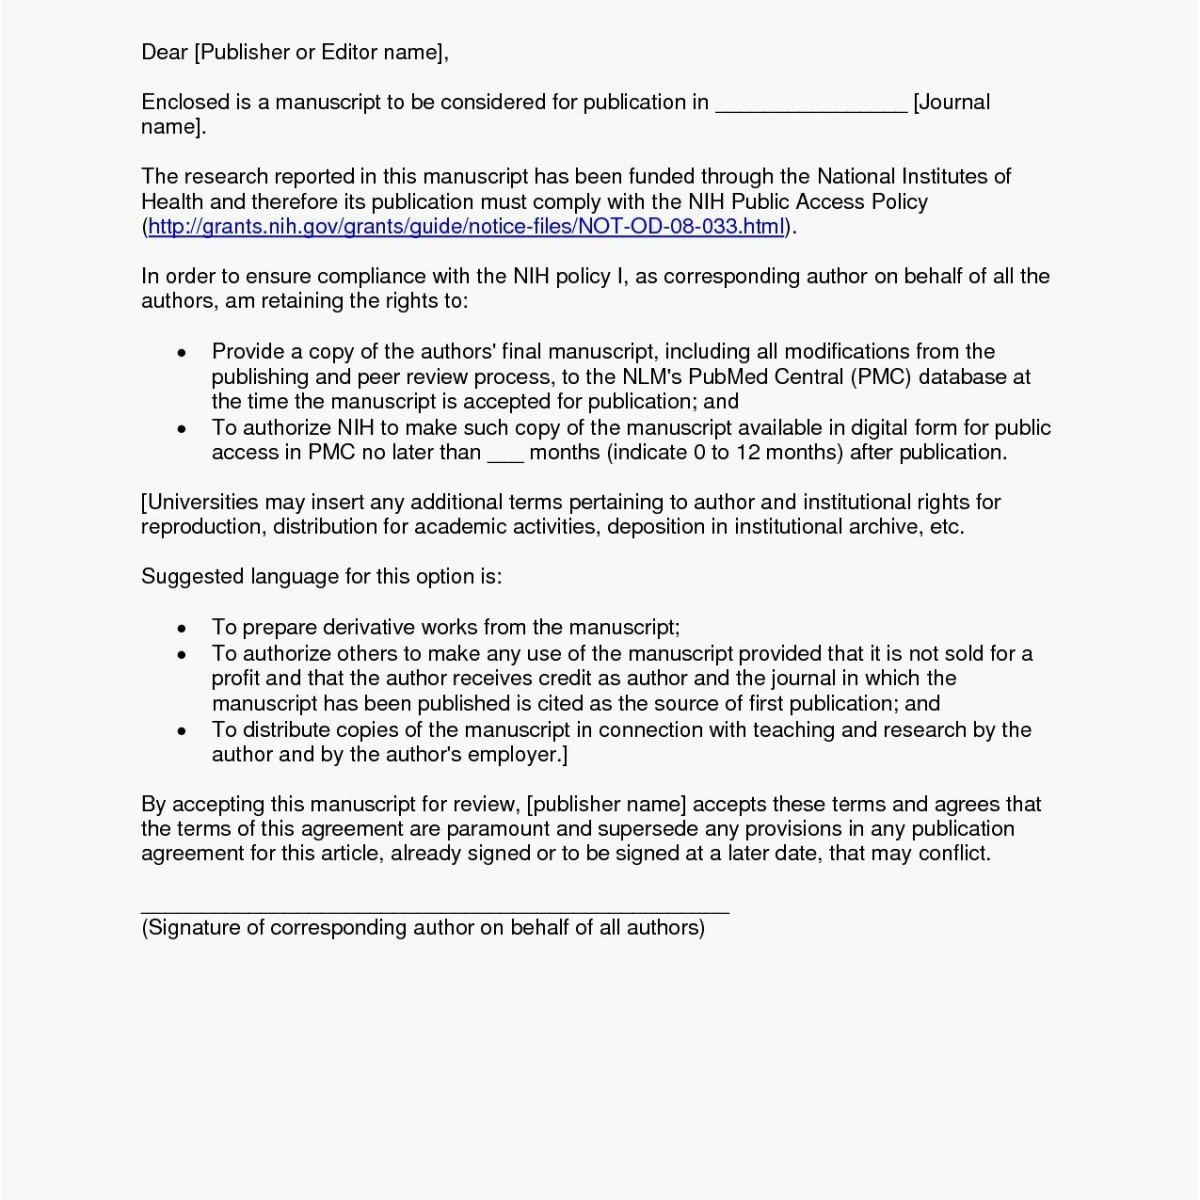 Business Analyst Resume Examples - Business Analyst Resume for Freshers Wonderful Business Analyst